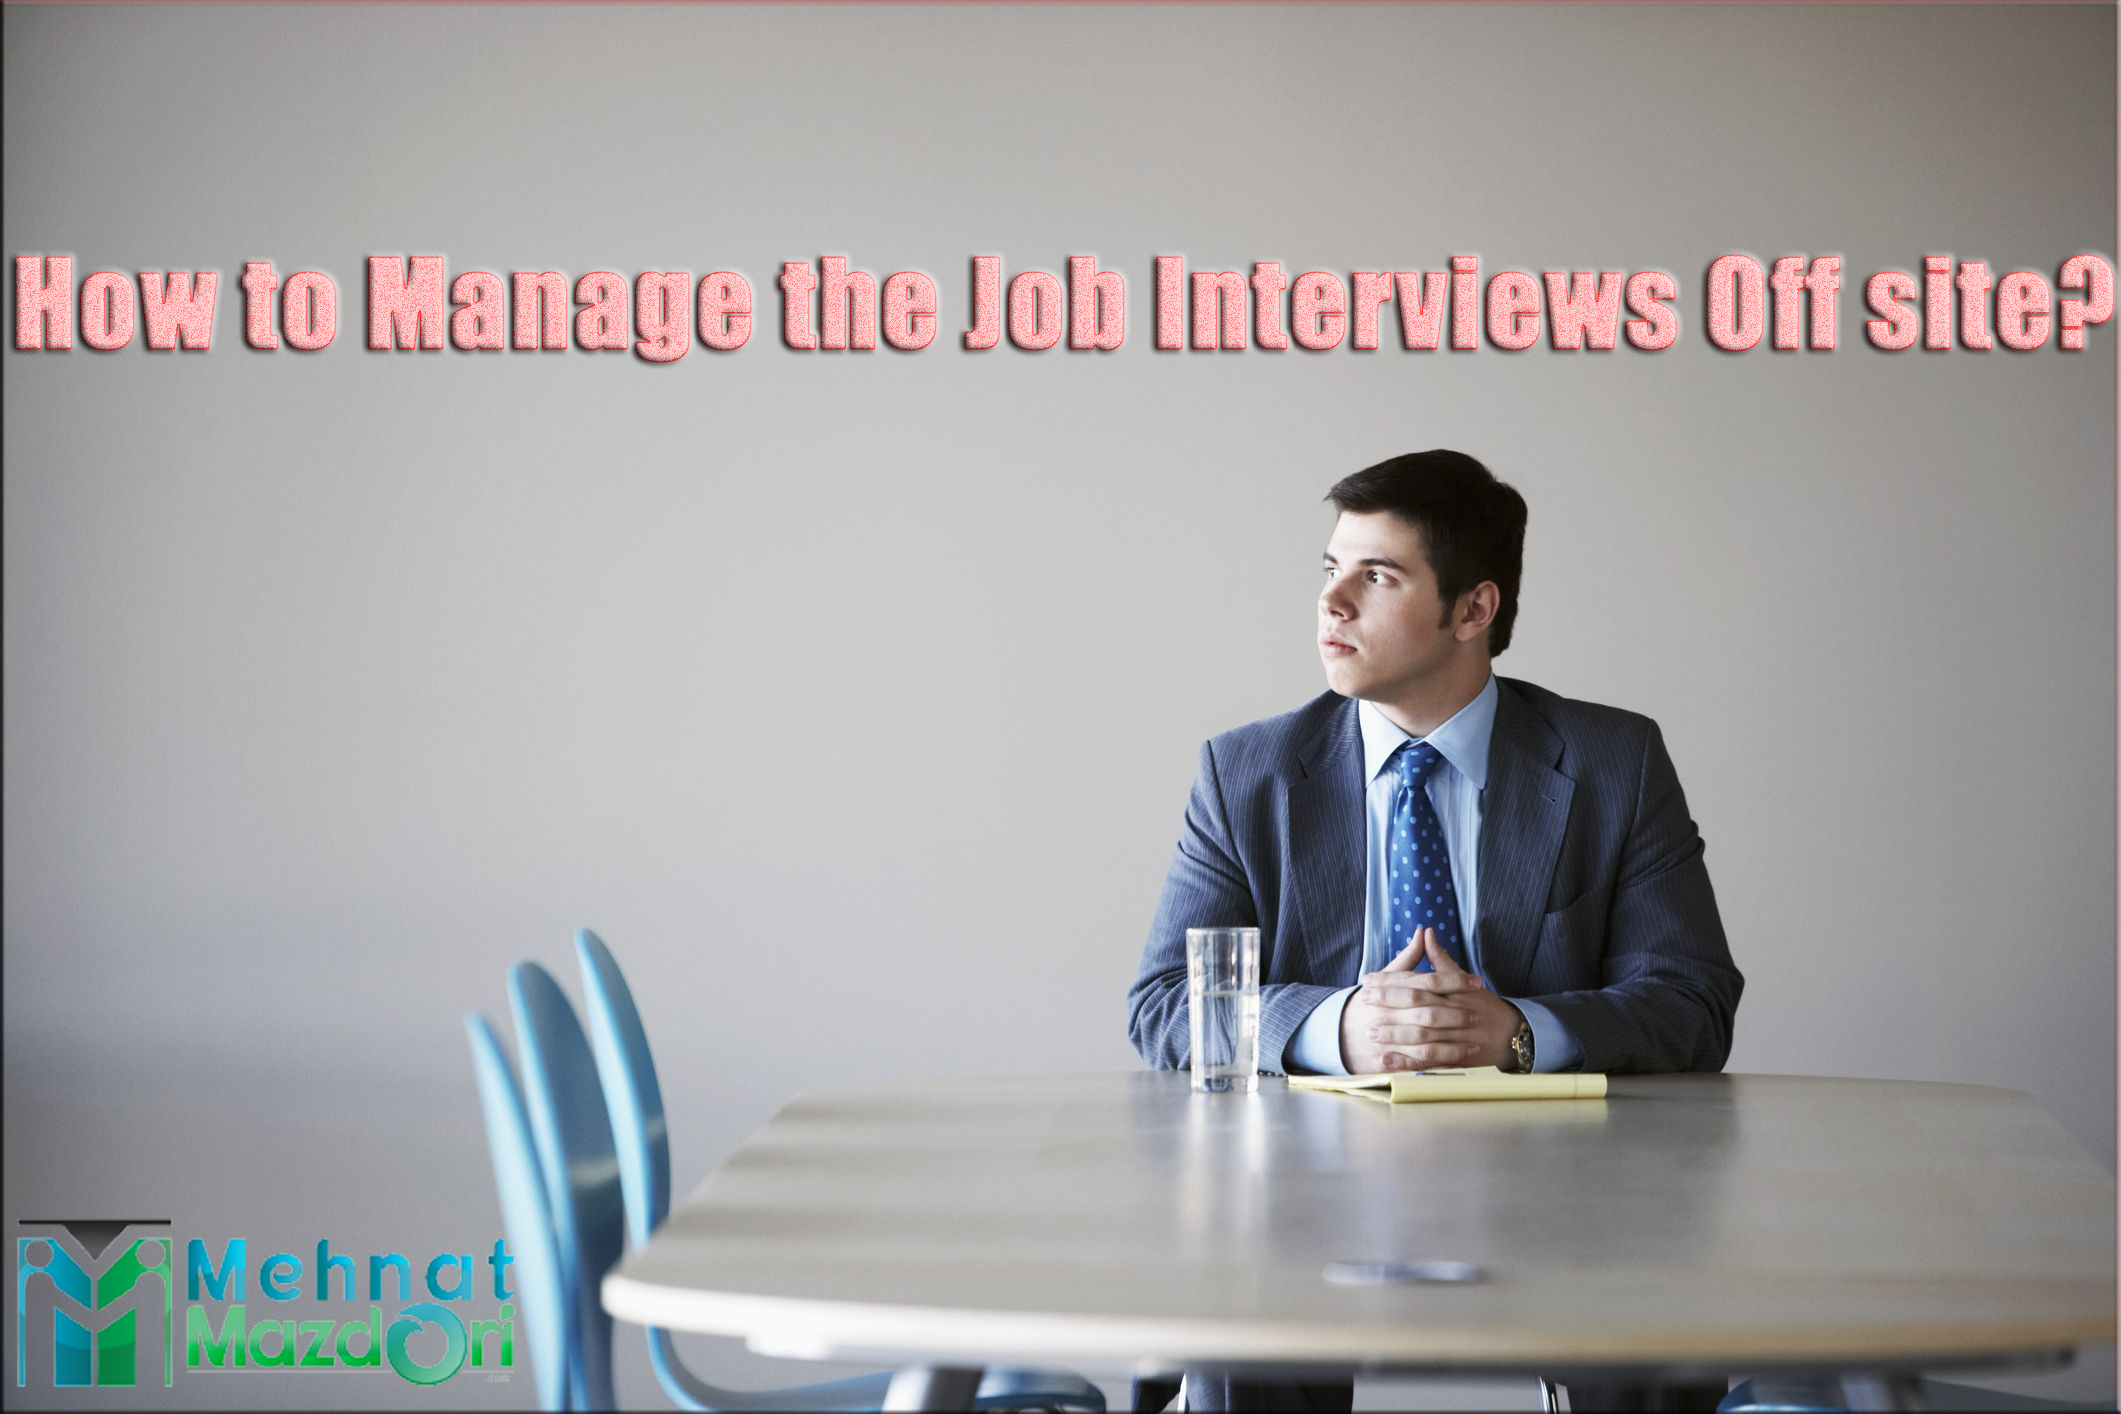 How to Manage the Job Interviews Off site?